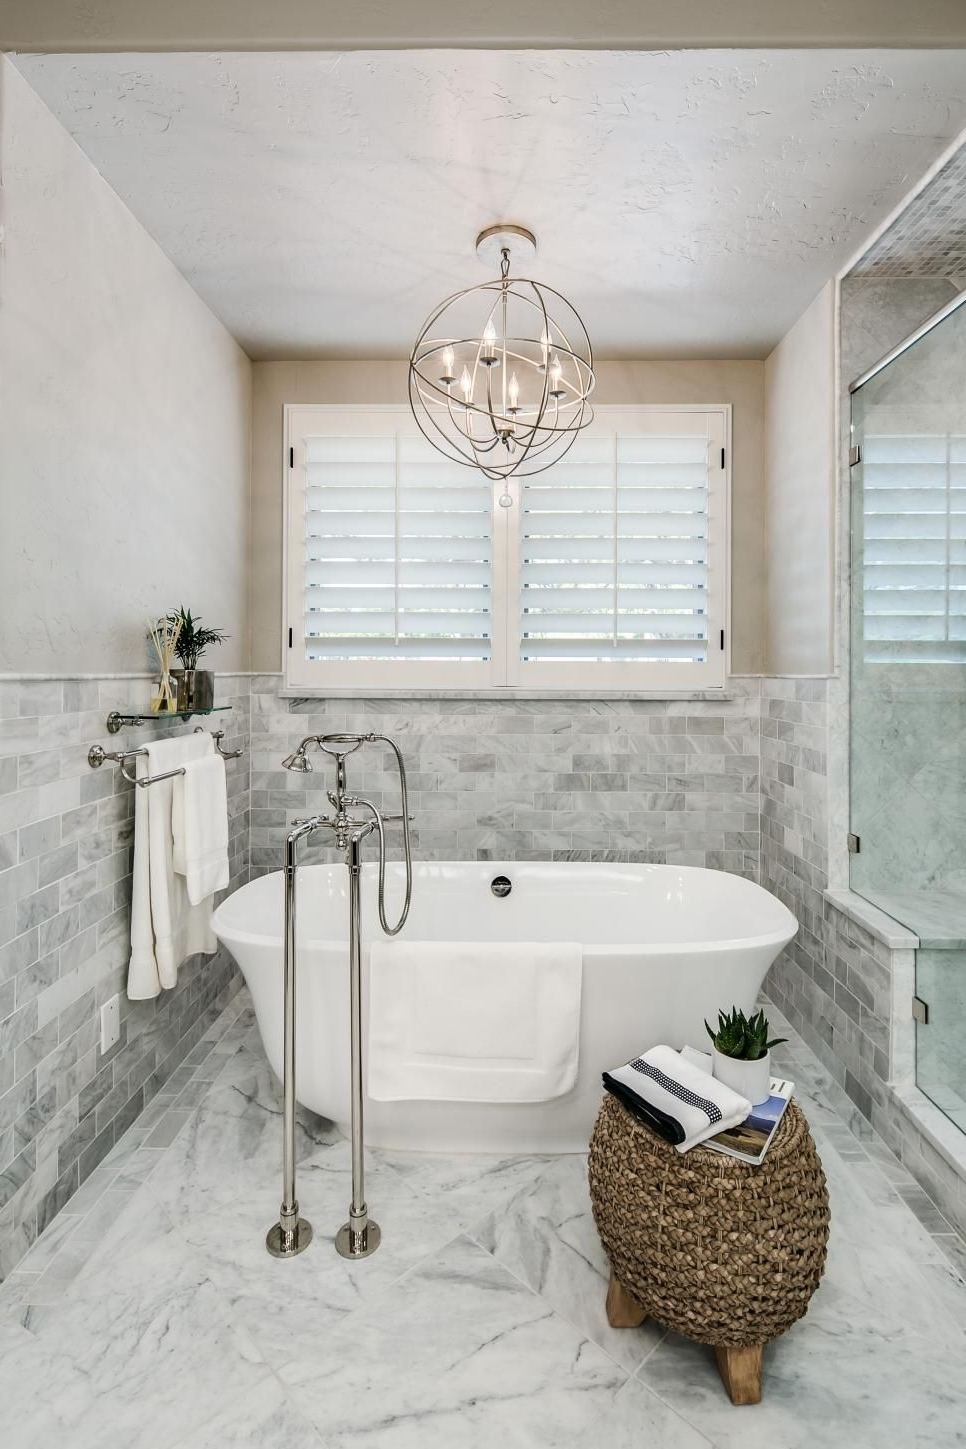 Latest Chandeliers For Bathrooms Pertaining To A Metal Orb Chandelier Is Centered Above The Freestanding Tub In (View 7 of 15)